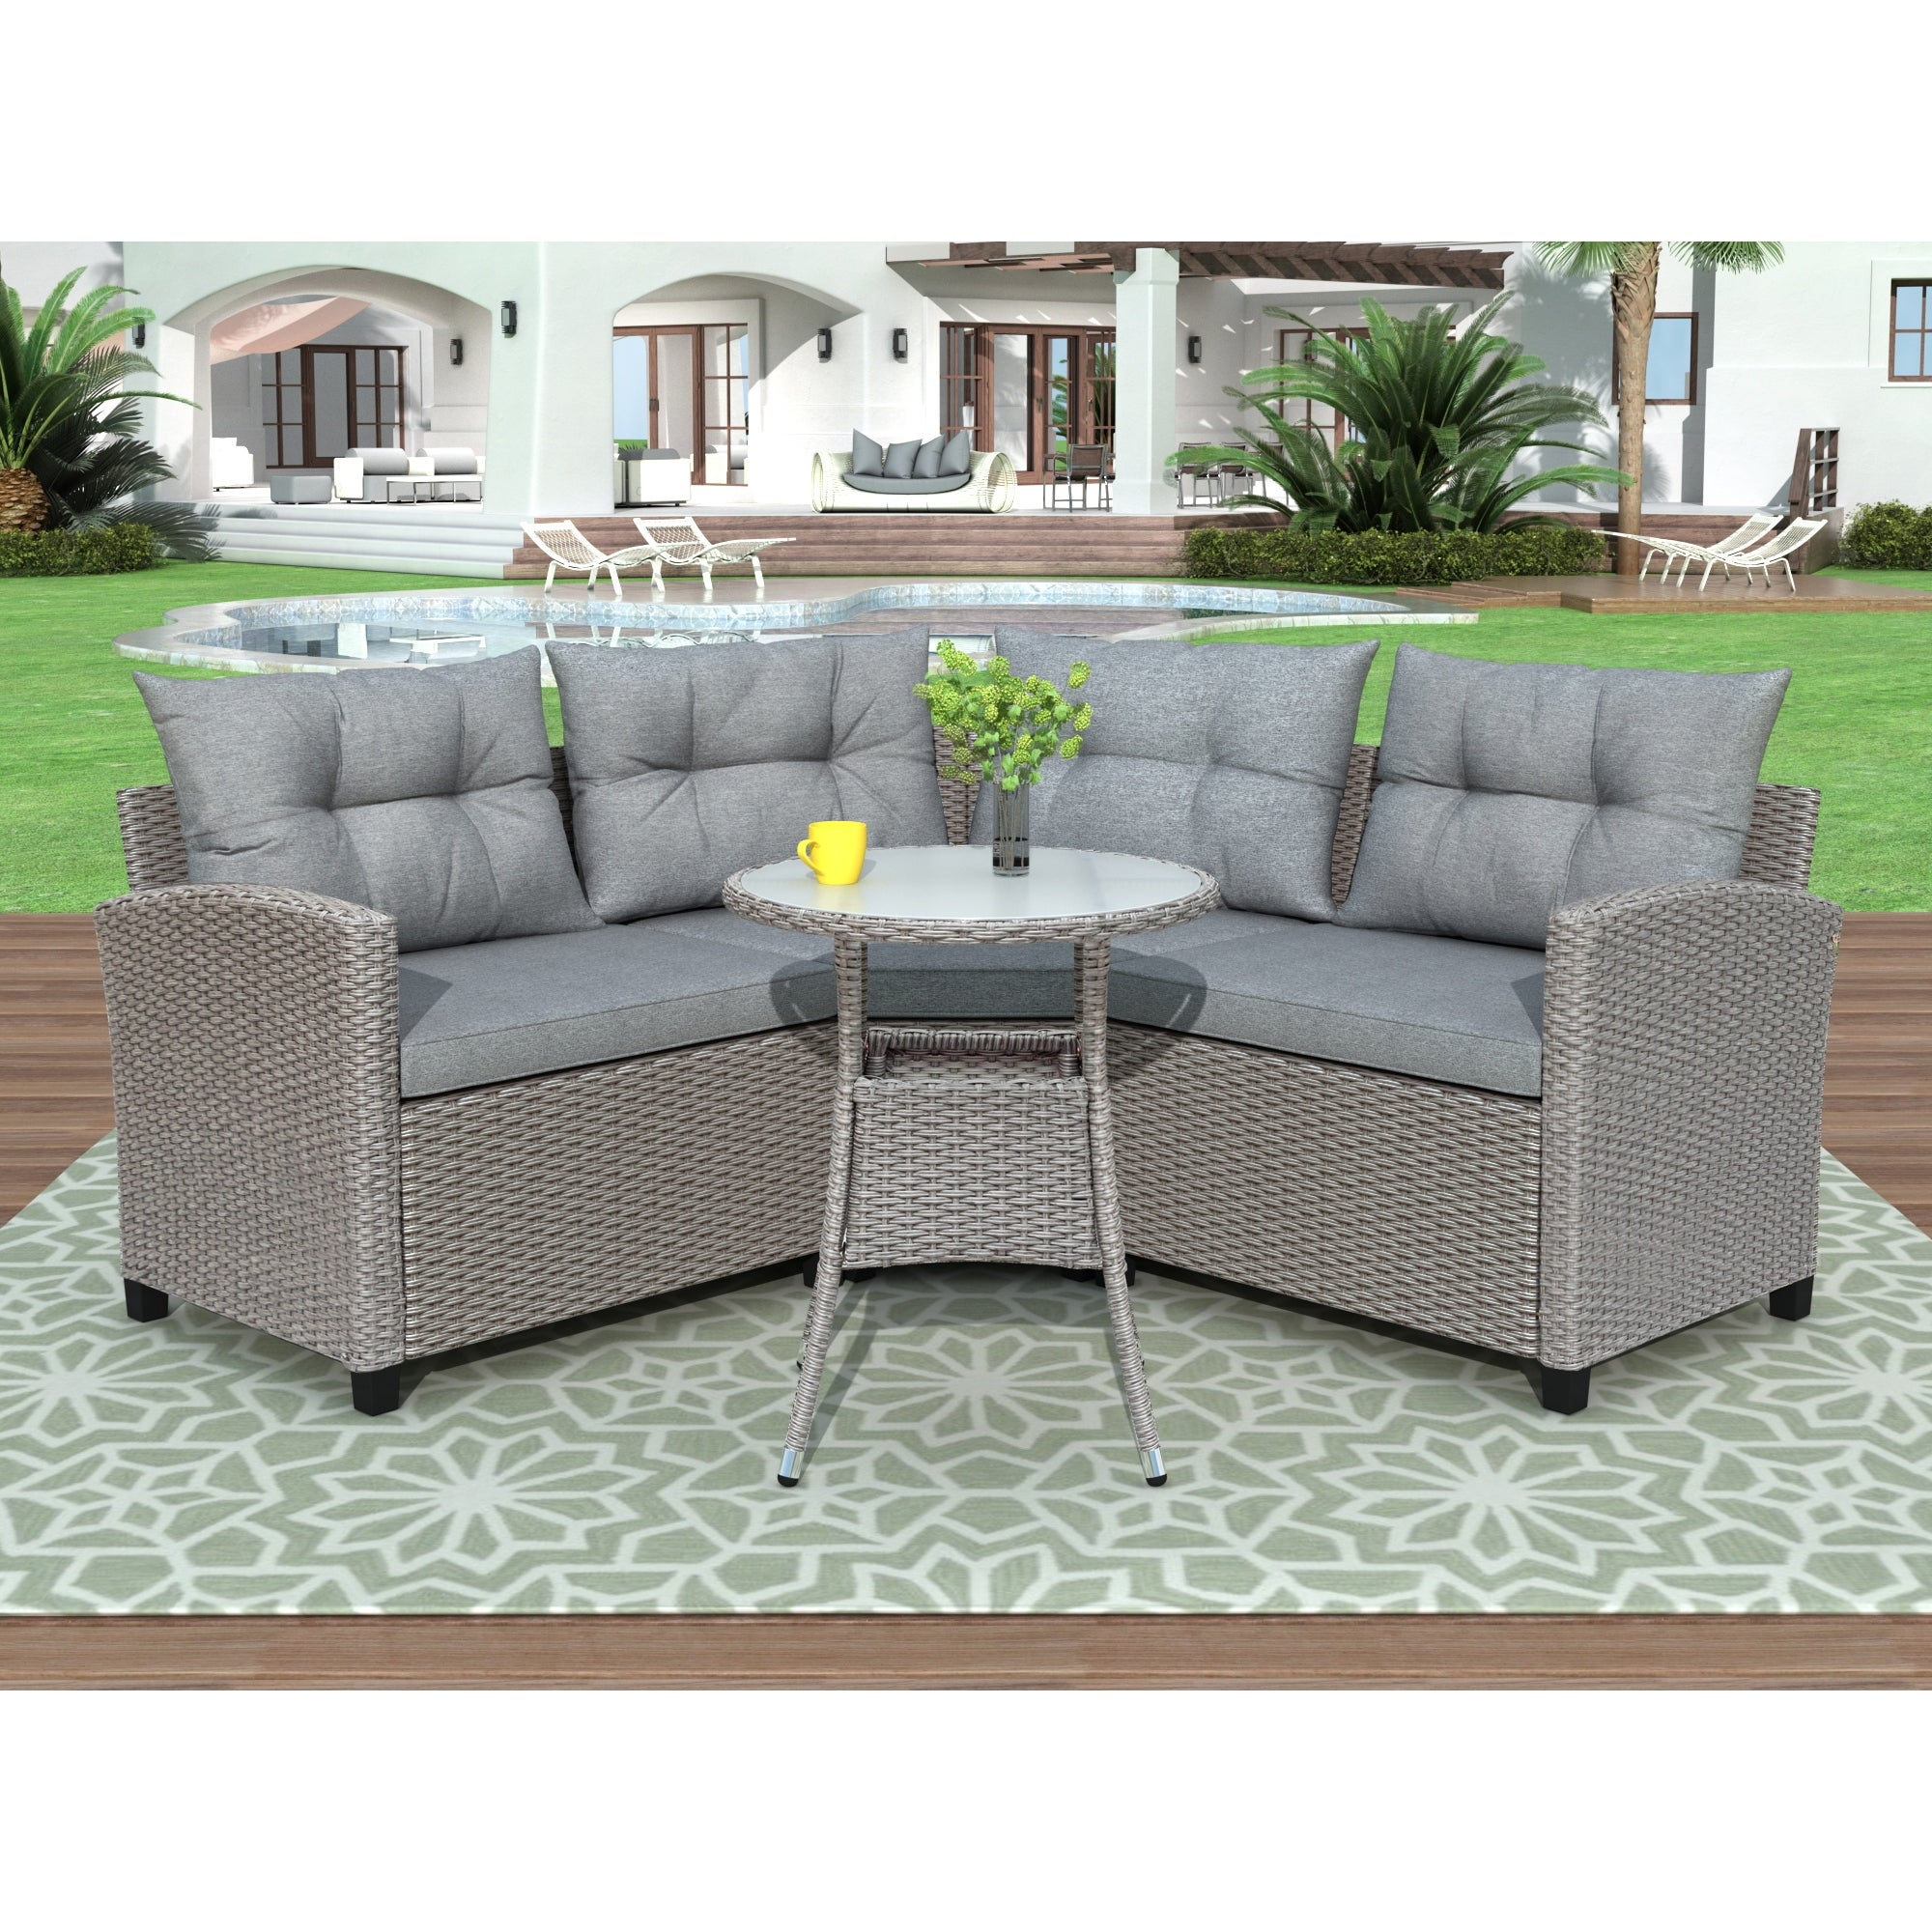 Picture of: Shop Leisure Zone 4 Piece Resin Wicker Patio Furniture Set With Round Table Overstock 31319065